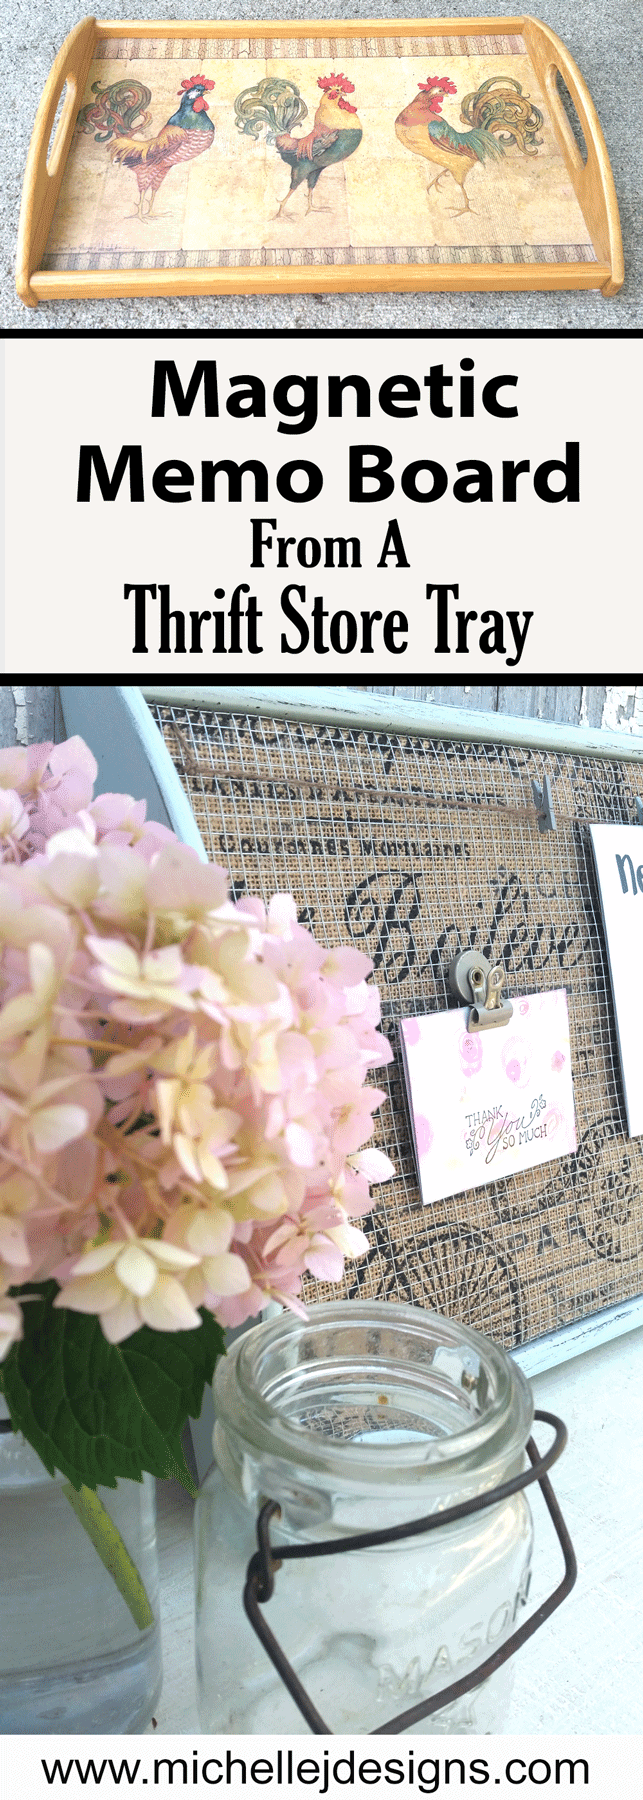 These trays are great for many things so I try not to pass them by at the thrift stores even when they look this bad. Come see how I turned this thrift store tray into a farmhouse style magnetic memo board. #farmhousestyle #memoboard #organization #diy - www.michellejdesigns.com